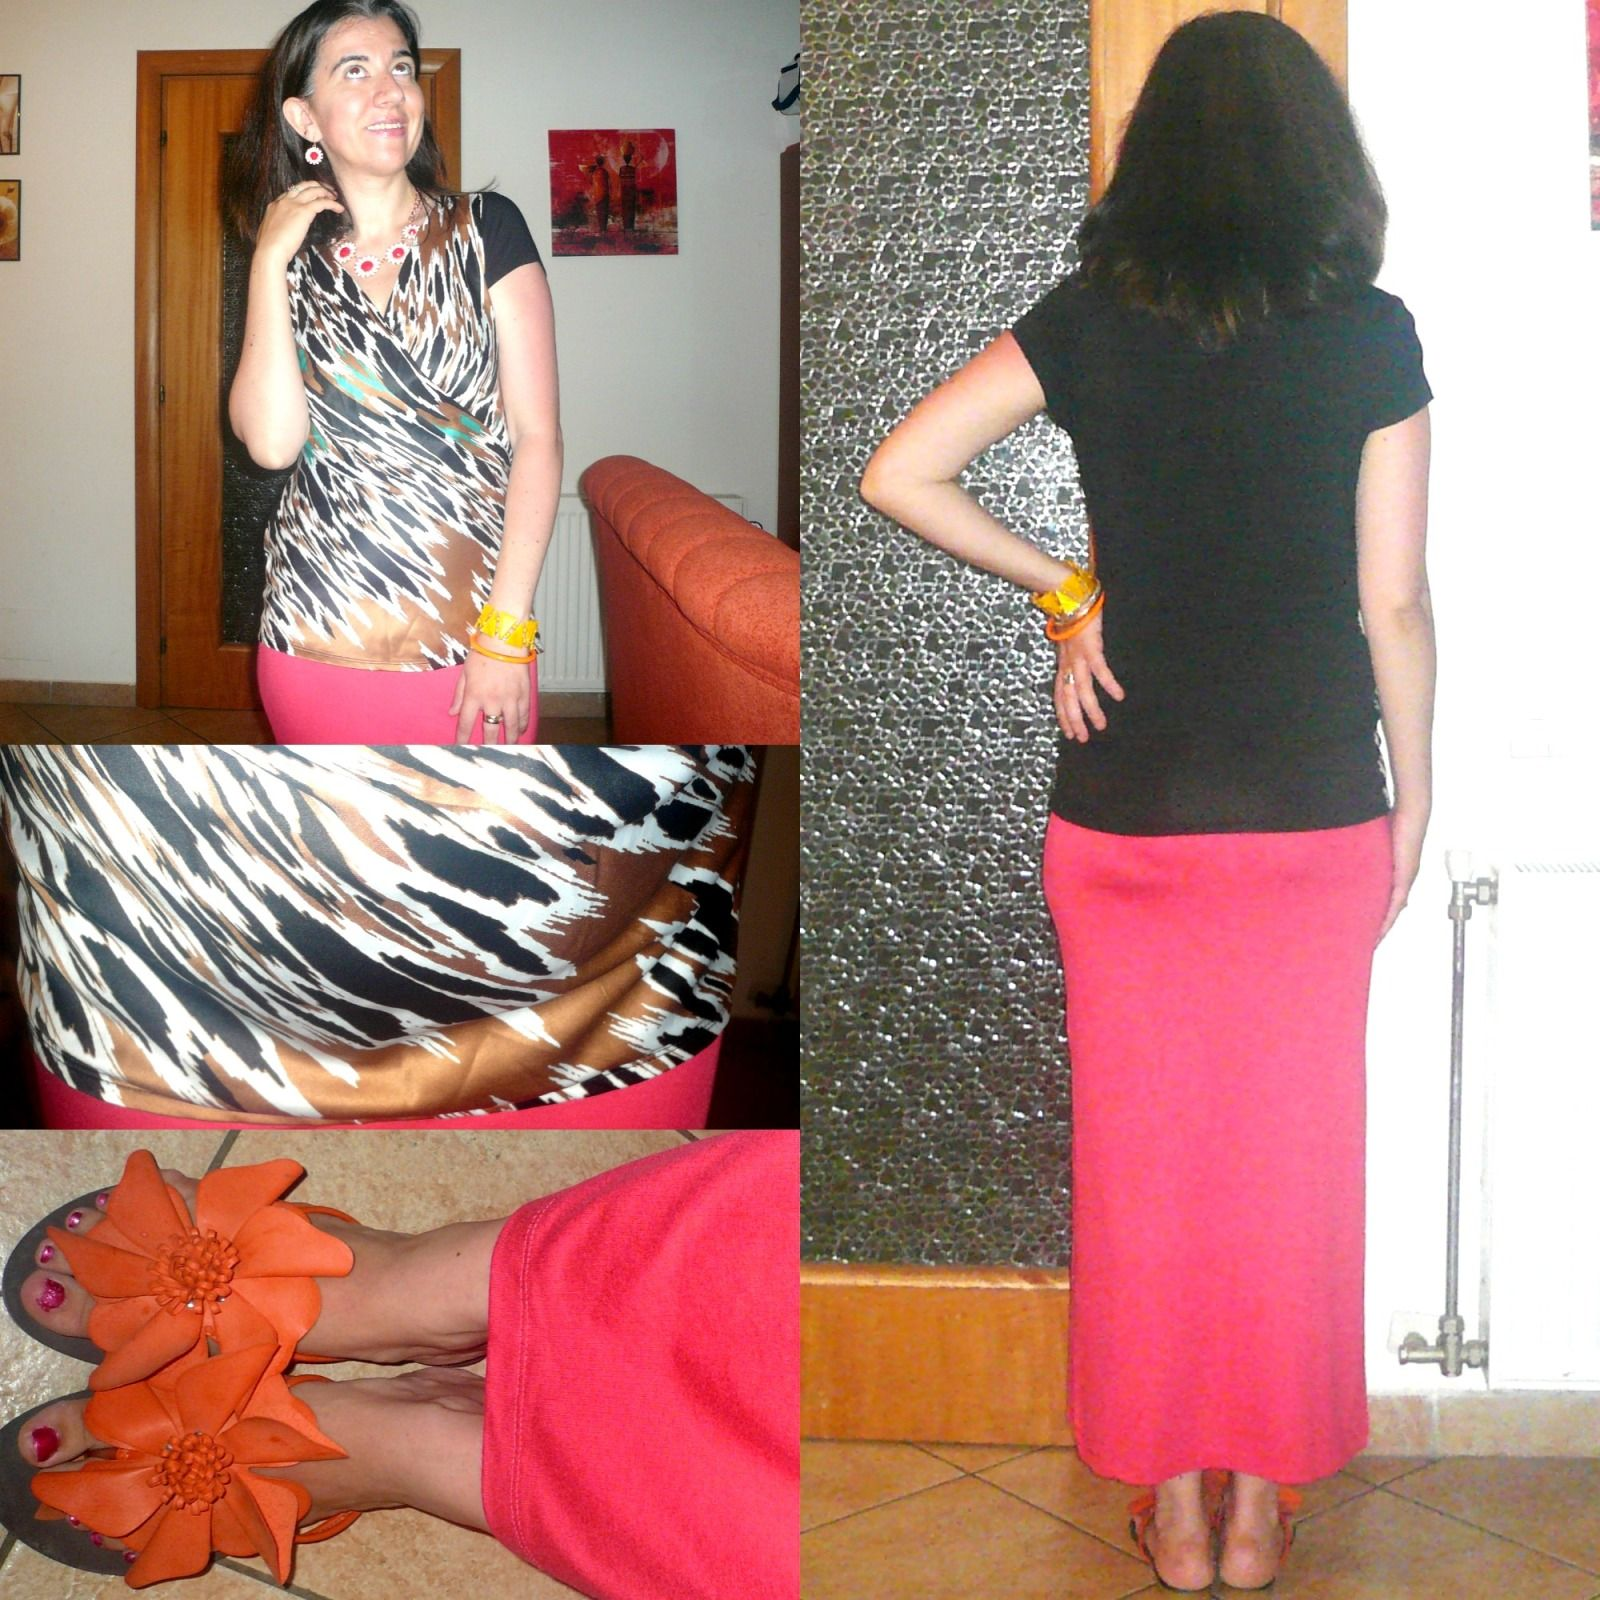 Elegance and Mommyhood.: Budget Babes: Summer Trends - The Maxi.